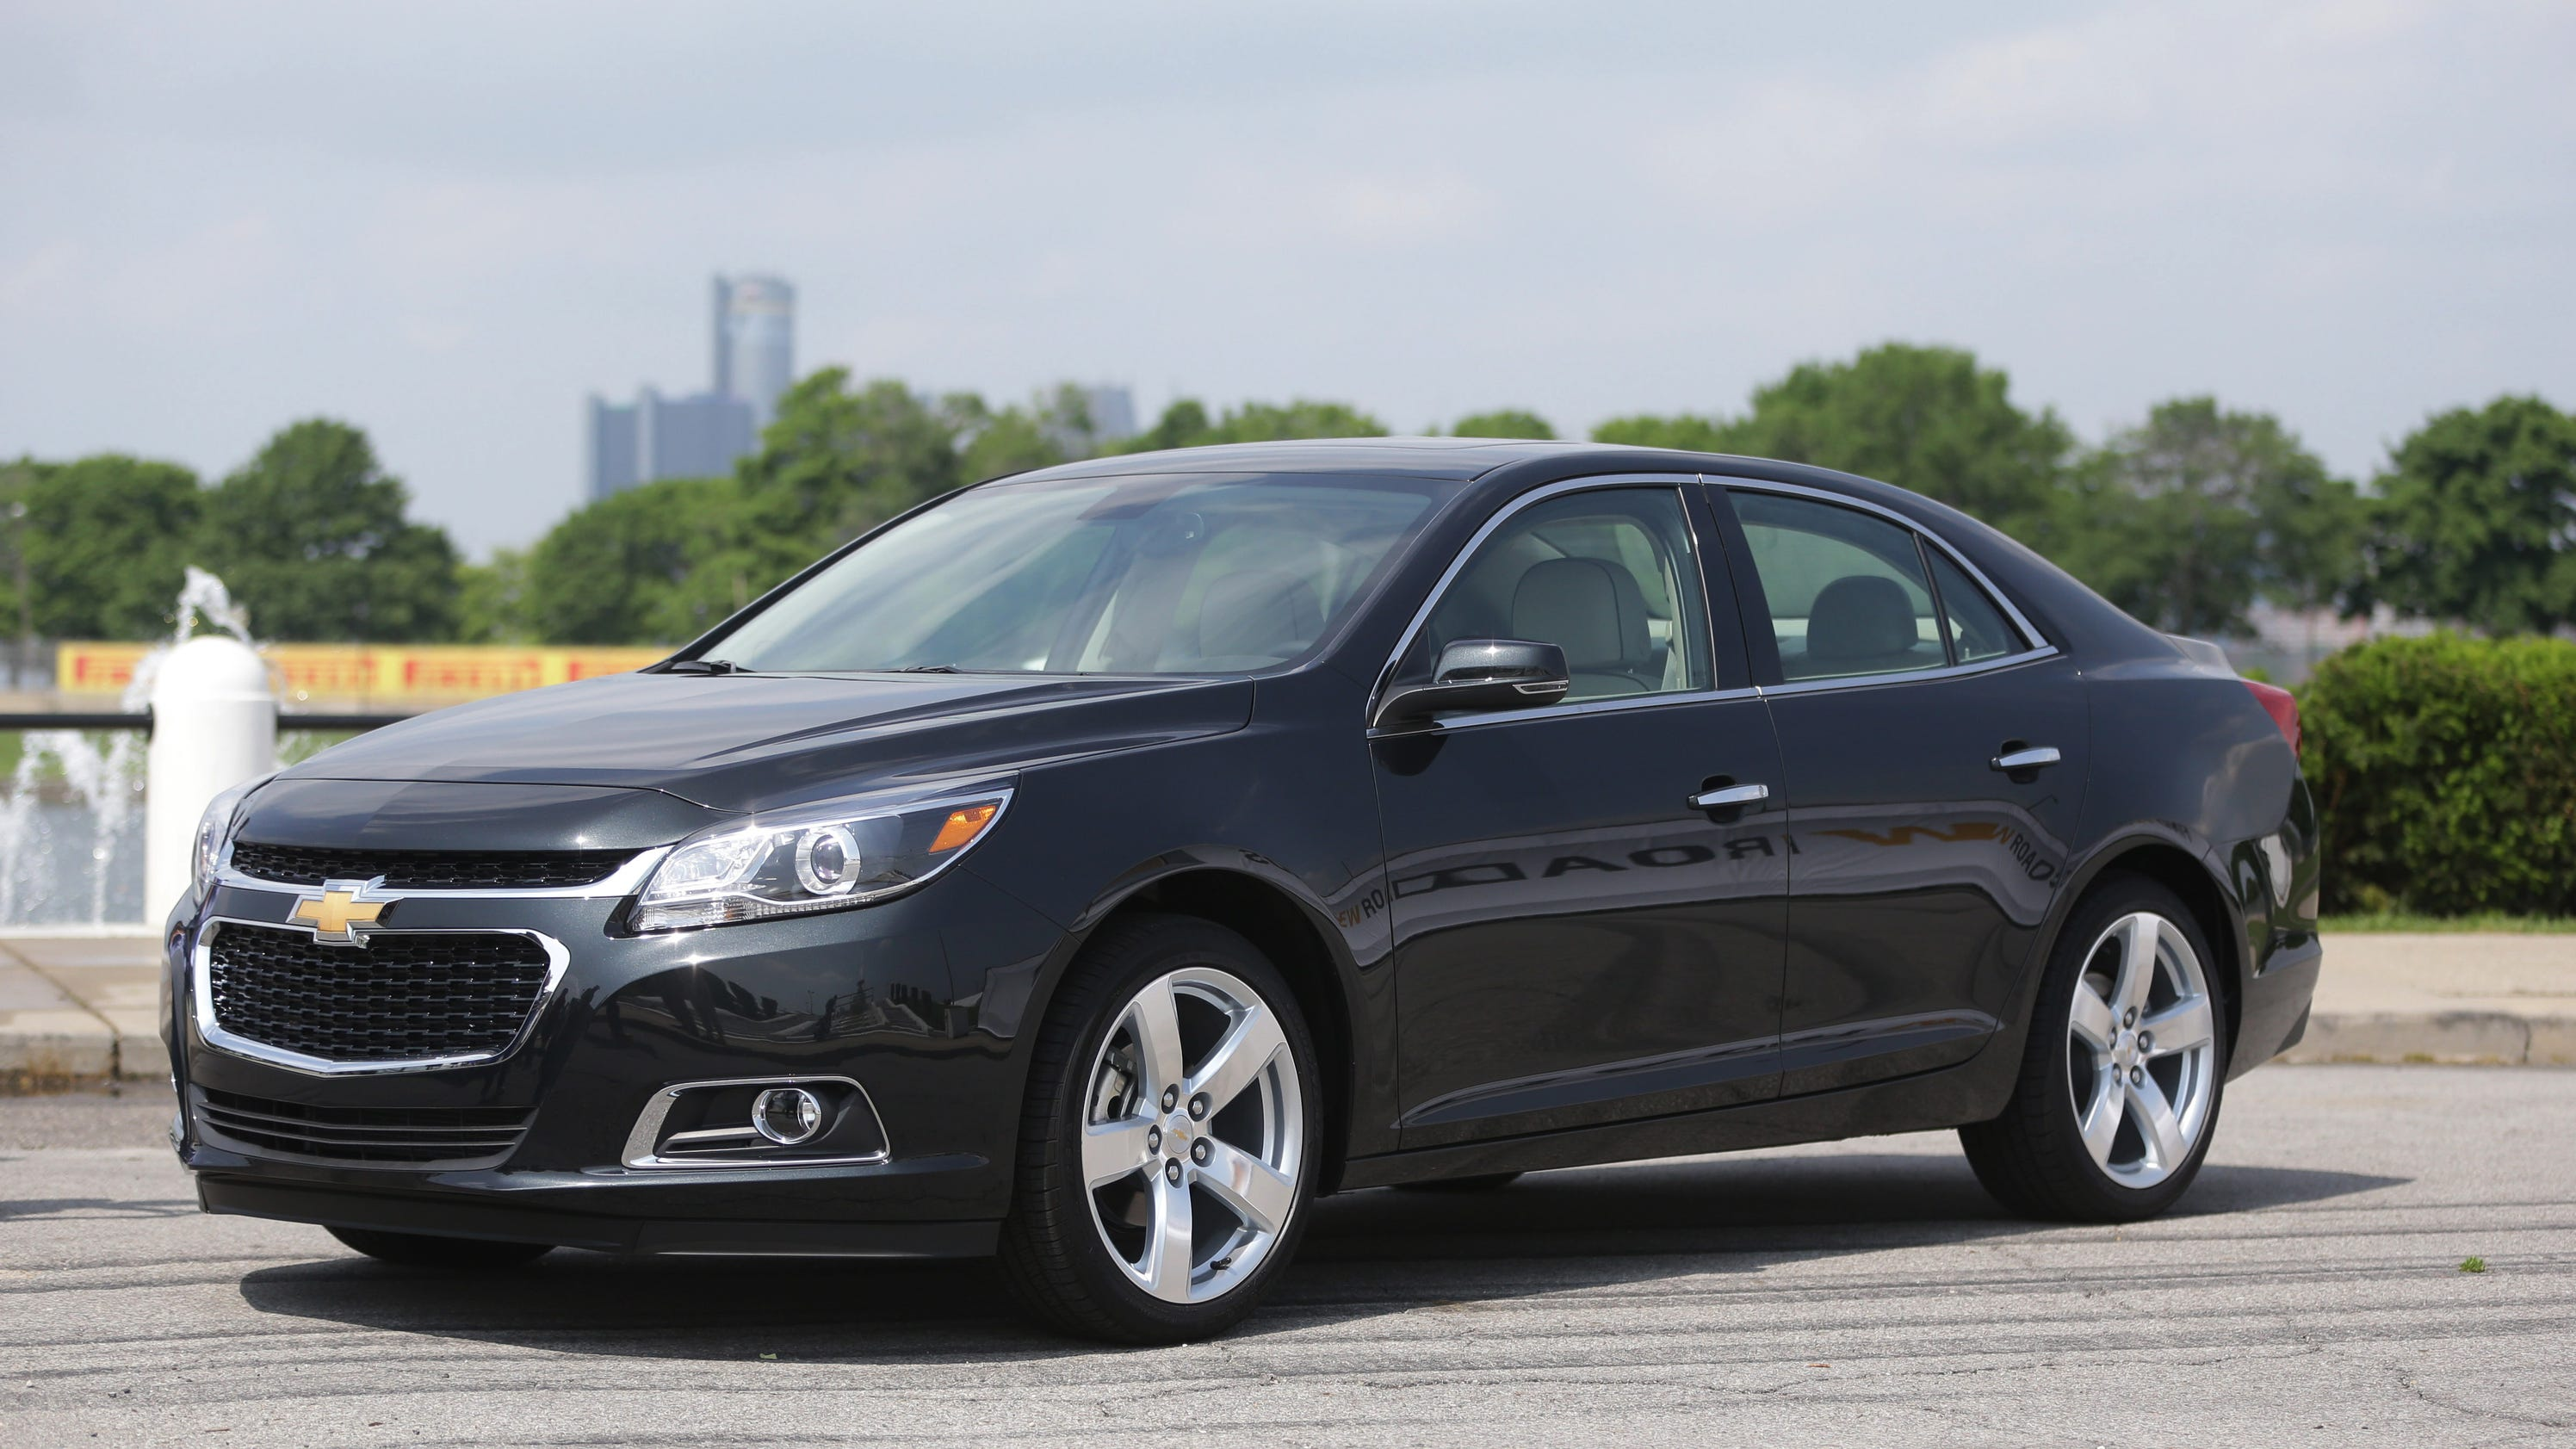 gm recalls chevy malibus to fix sunroof control issue. Cars Review. Best American Auto & Cars Review